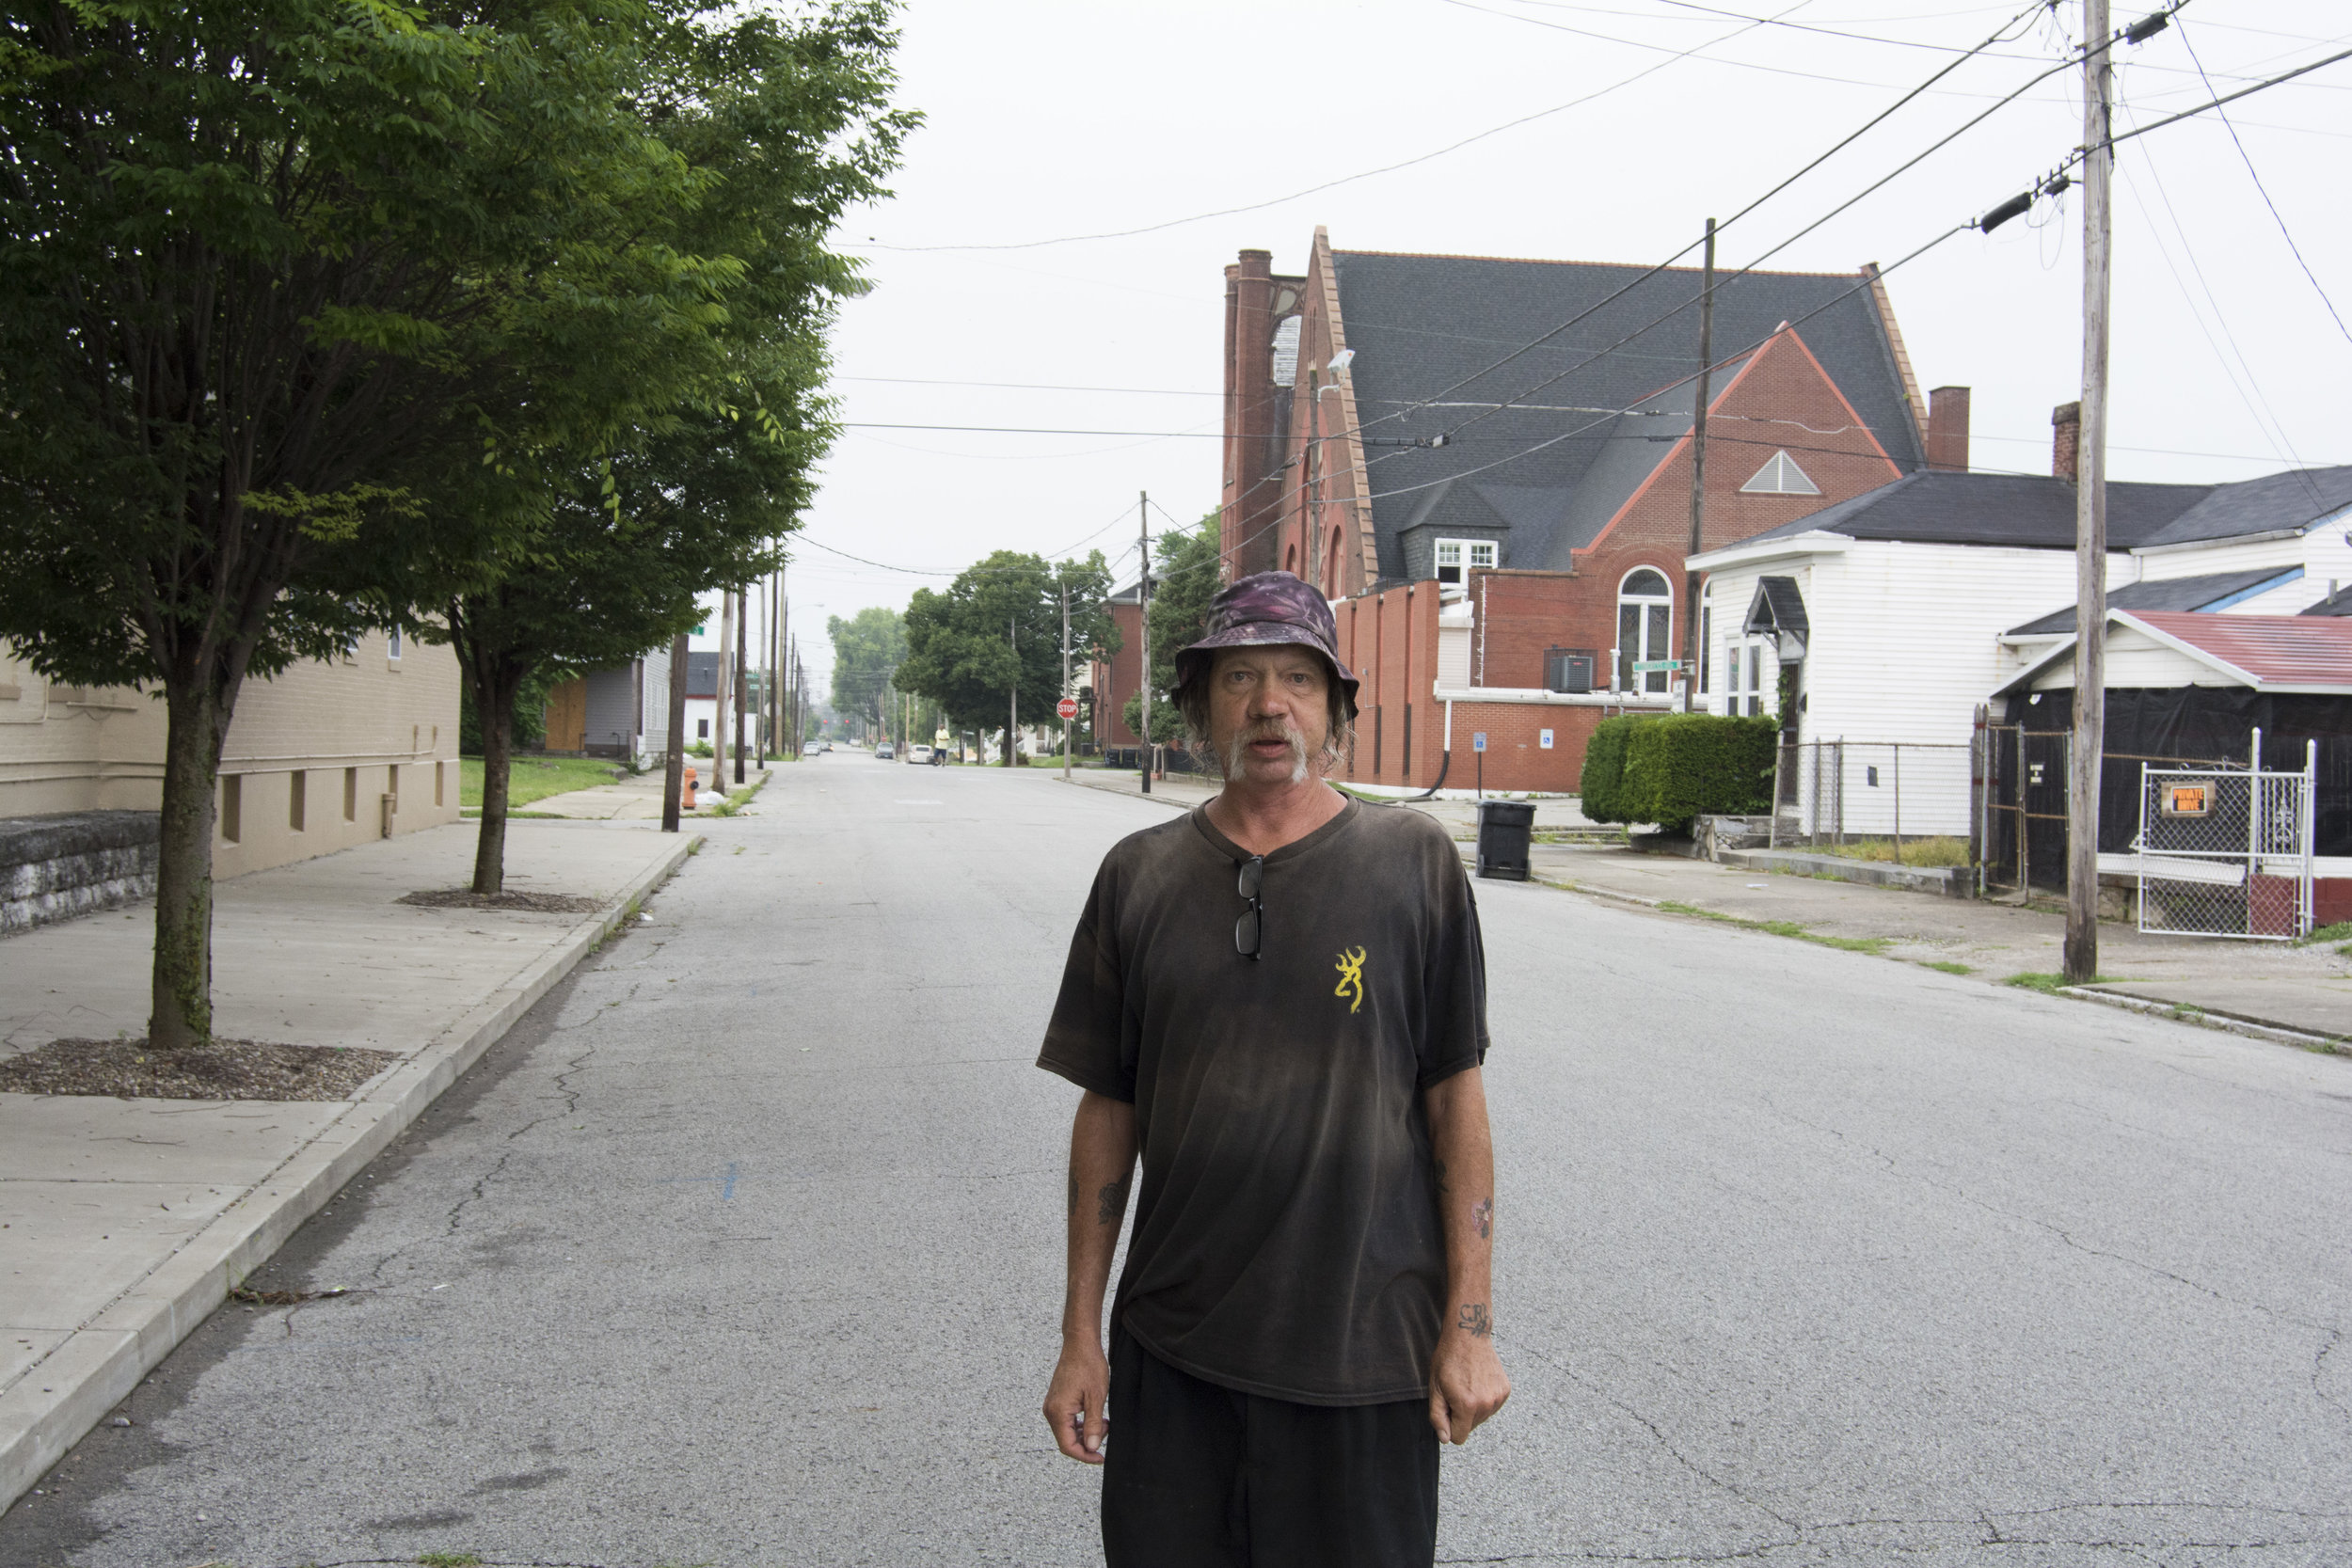 """I was married for 8 years. That's back when I was in Evansville, IN. That's where I'm originally from. I came here to go to JDAC to get cleaned out. I just decided to stay. I ain't gonna lie, I like Louisville. I had a little trouble. I've been jumped by some guys. That's why I carry that cane. I don't need that cane, I carry it for protection. They put eight stitches on top of my head, blacked my eye, didn't break nose, but bloodied it. Bruised my ribs. I just came from Labor Express, but I didn't make the cut. I just got those stitches out of my head about a week ago. They said it has to be completely healed before they let me work. I'm lucky they didn't break my skull."" - Chris, Portland"